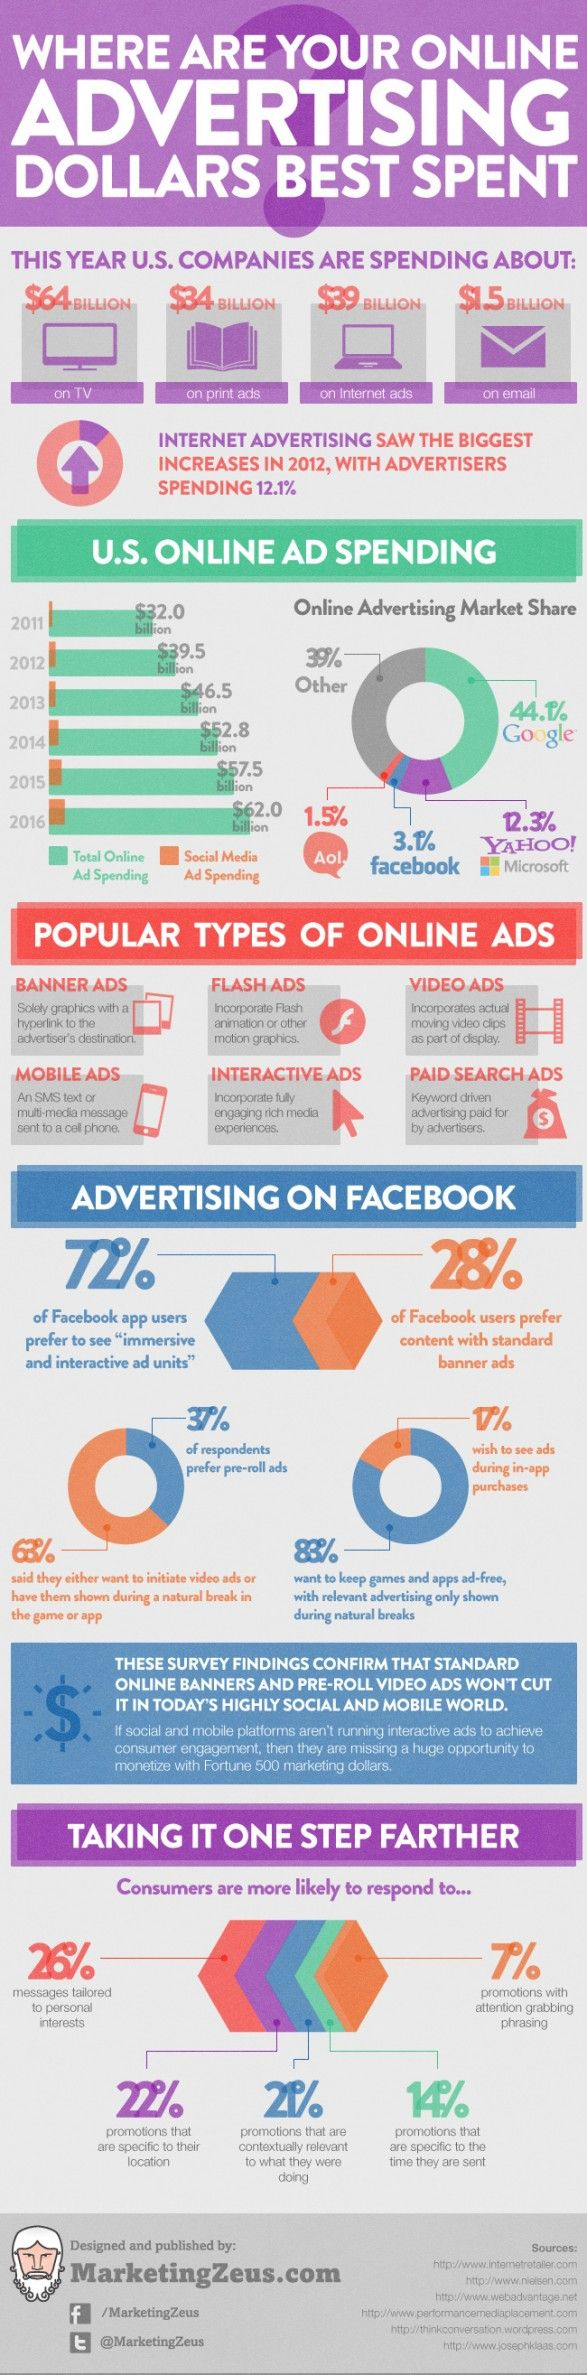 7/10 Posted by Marketing Zeus. The infographic is linked to a site in which it further describes where online advertising should best be spent. It also mentions the types of online advertising that consumers are most likely to respond to. #online #advertising #budget